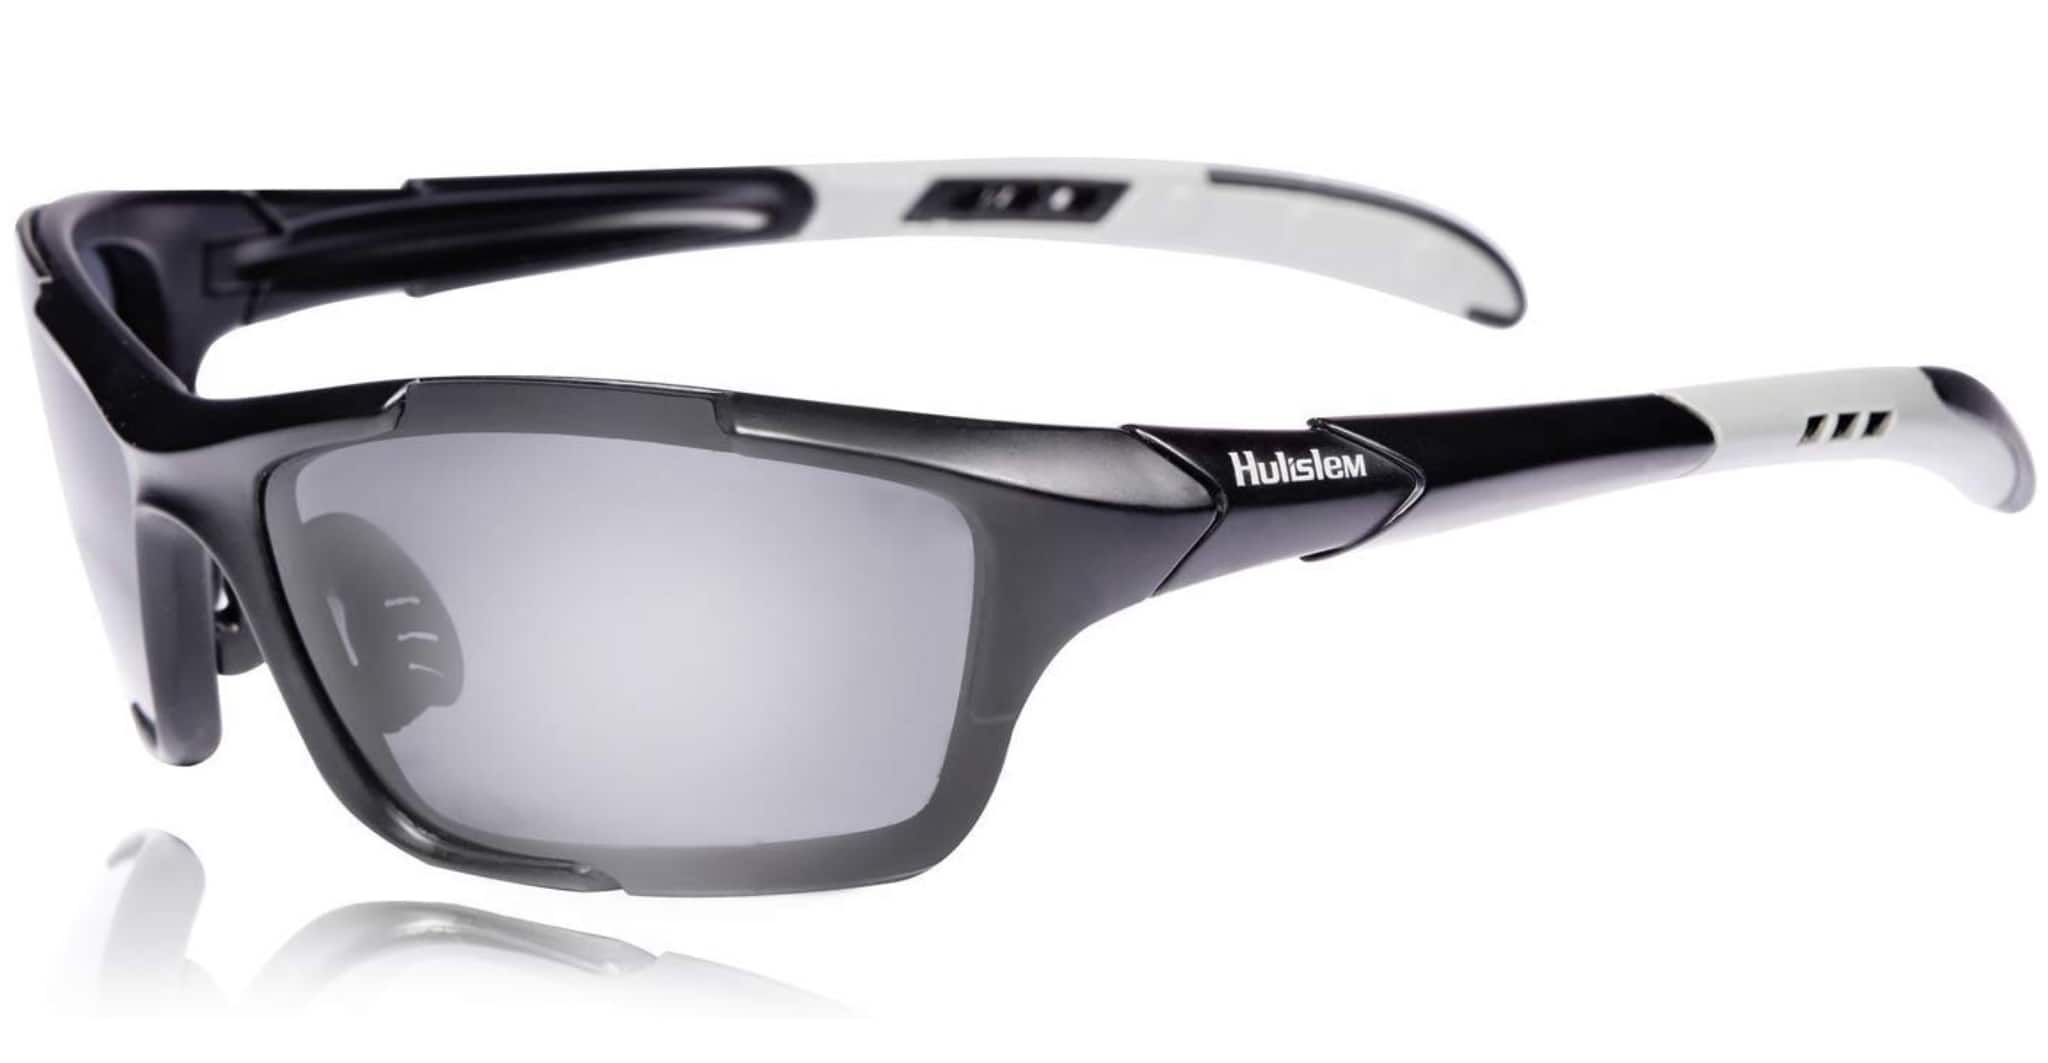 Hulislem S1 Sport Polarized Sunglasses FDA Approved $11